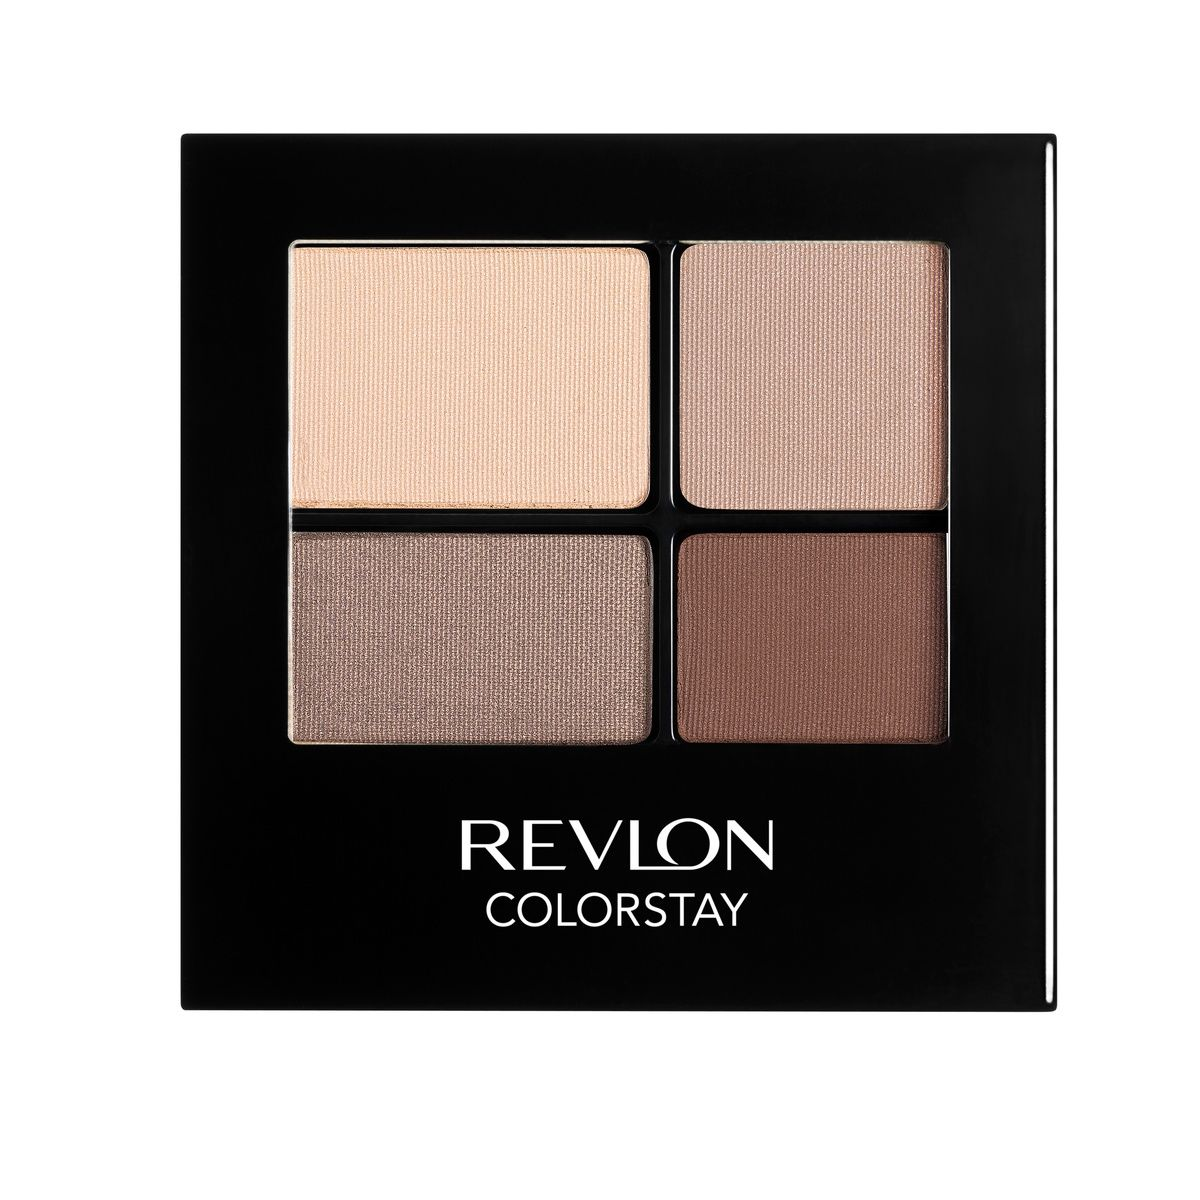 This eyeshadow is excellent as a brow powder as well. Double up, save money and have natural looking brows!